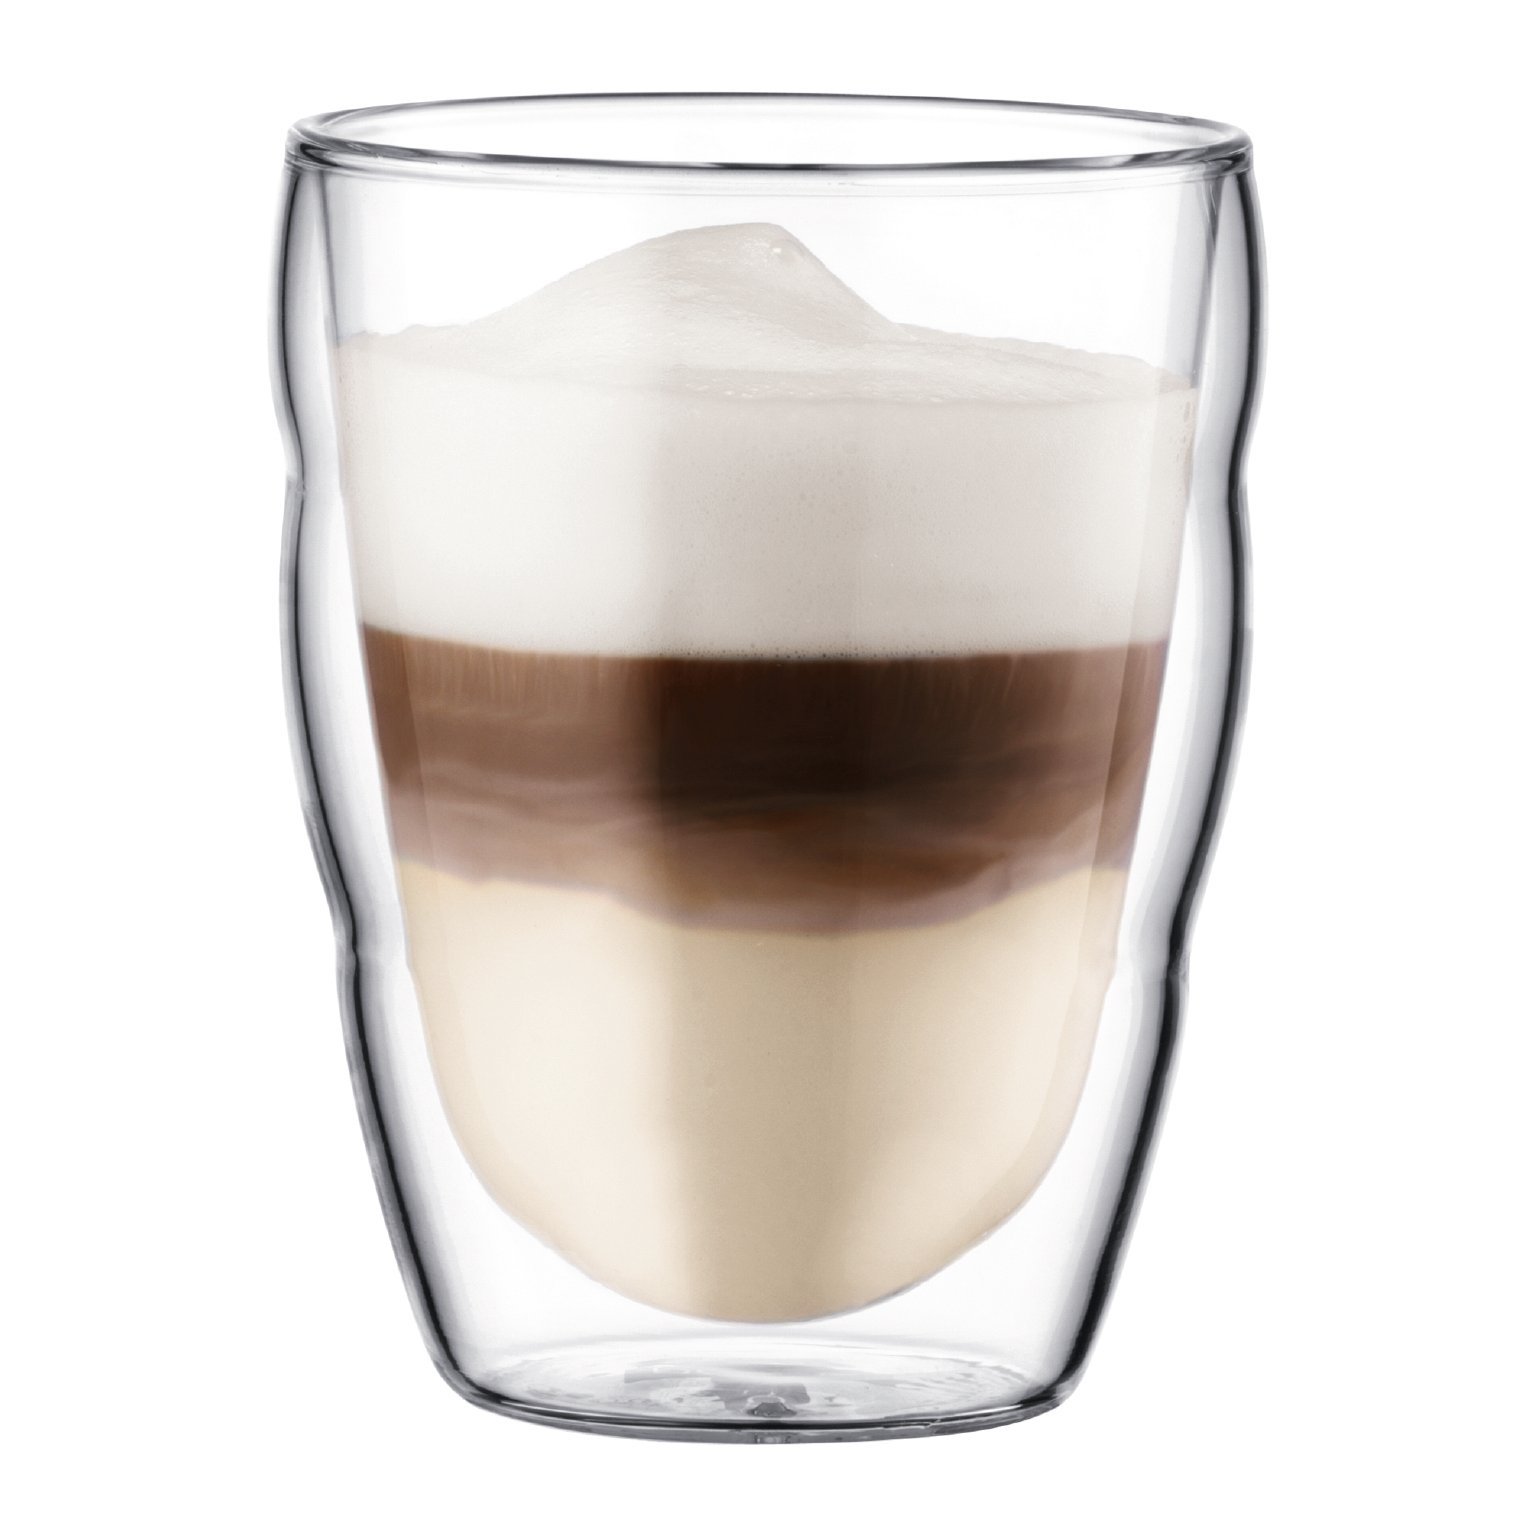 Bodum Pilatus 8 Ounce Double Walled Glass Cup, Set of 2